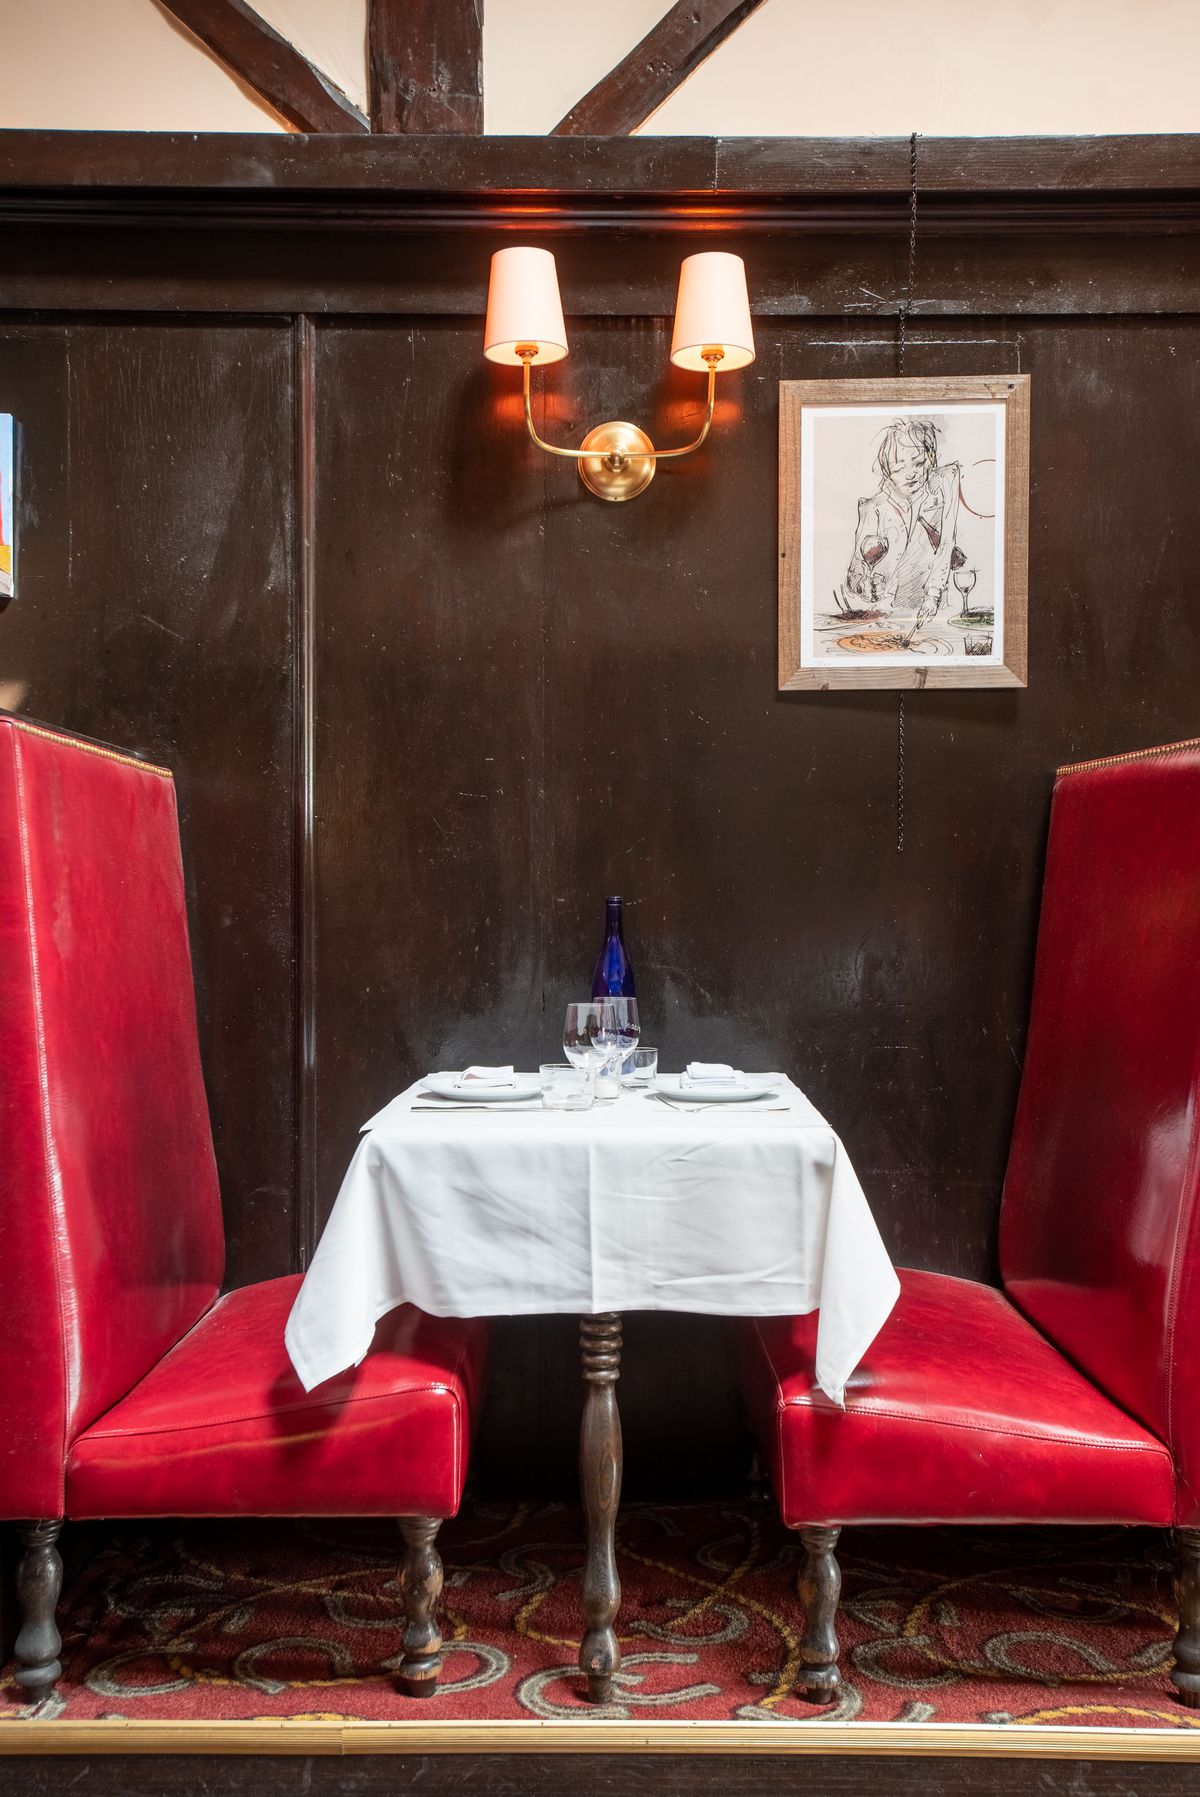 A close shot of tall booths and white tablecloths at an aging bar.